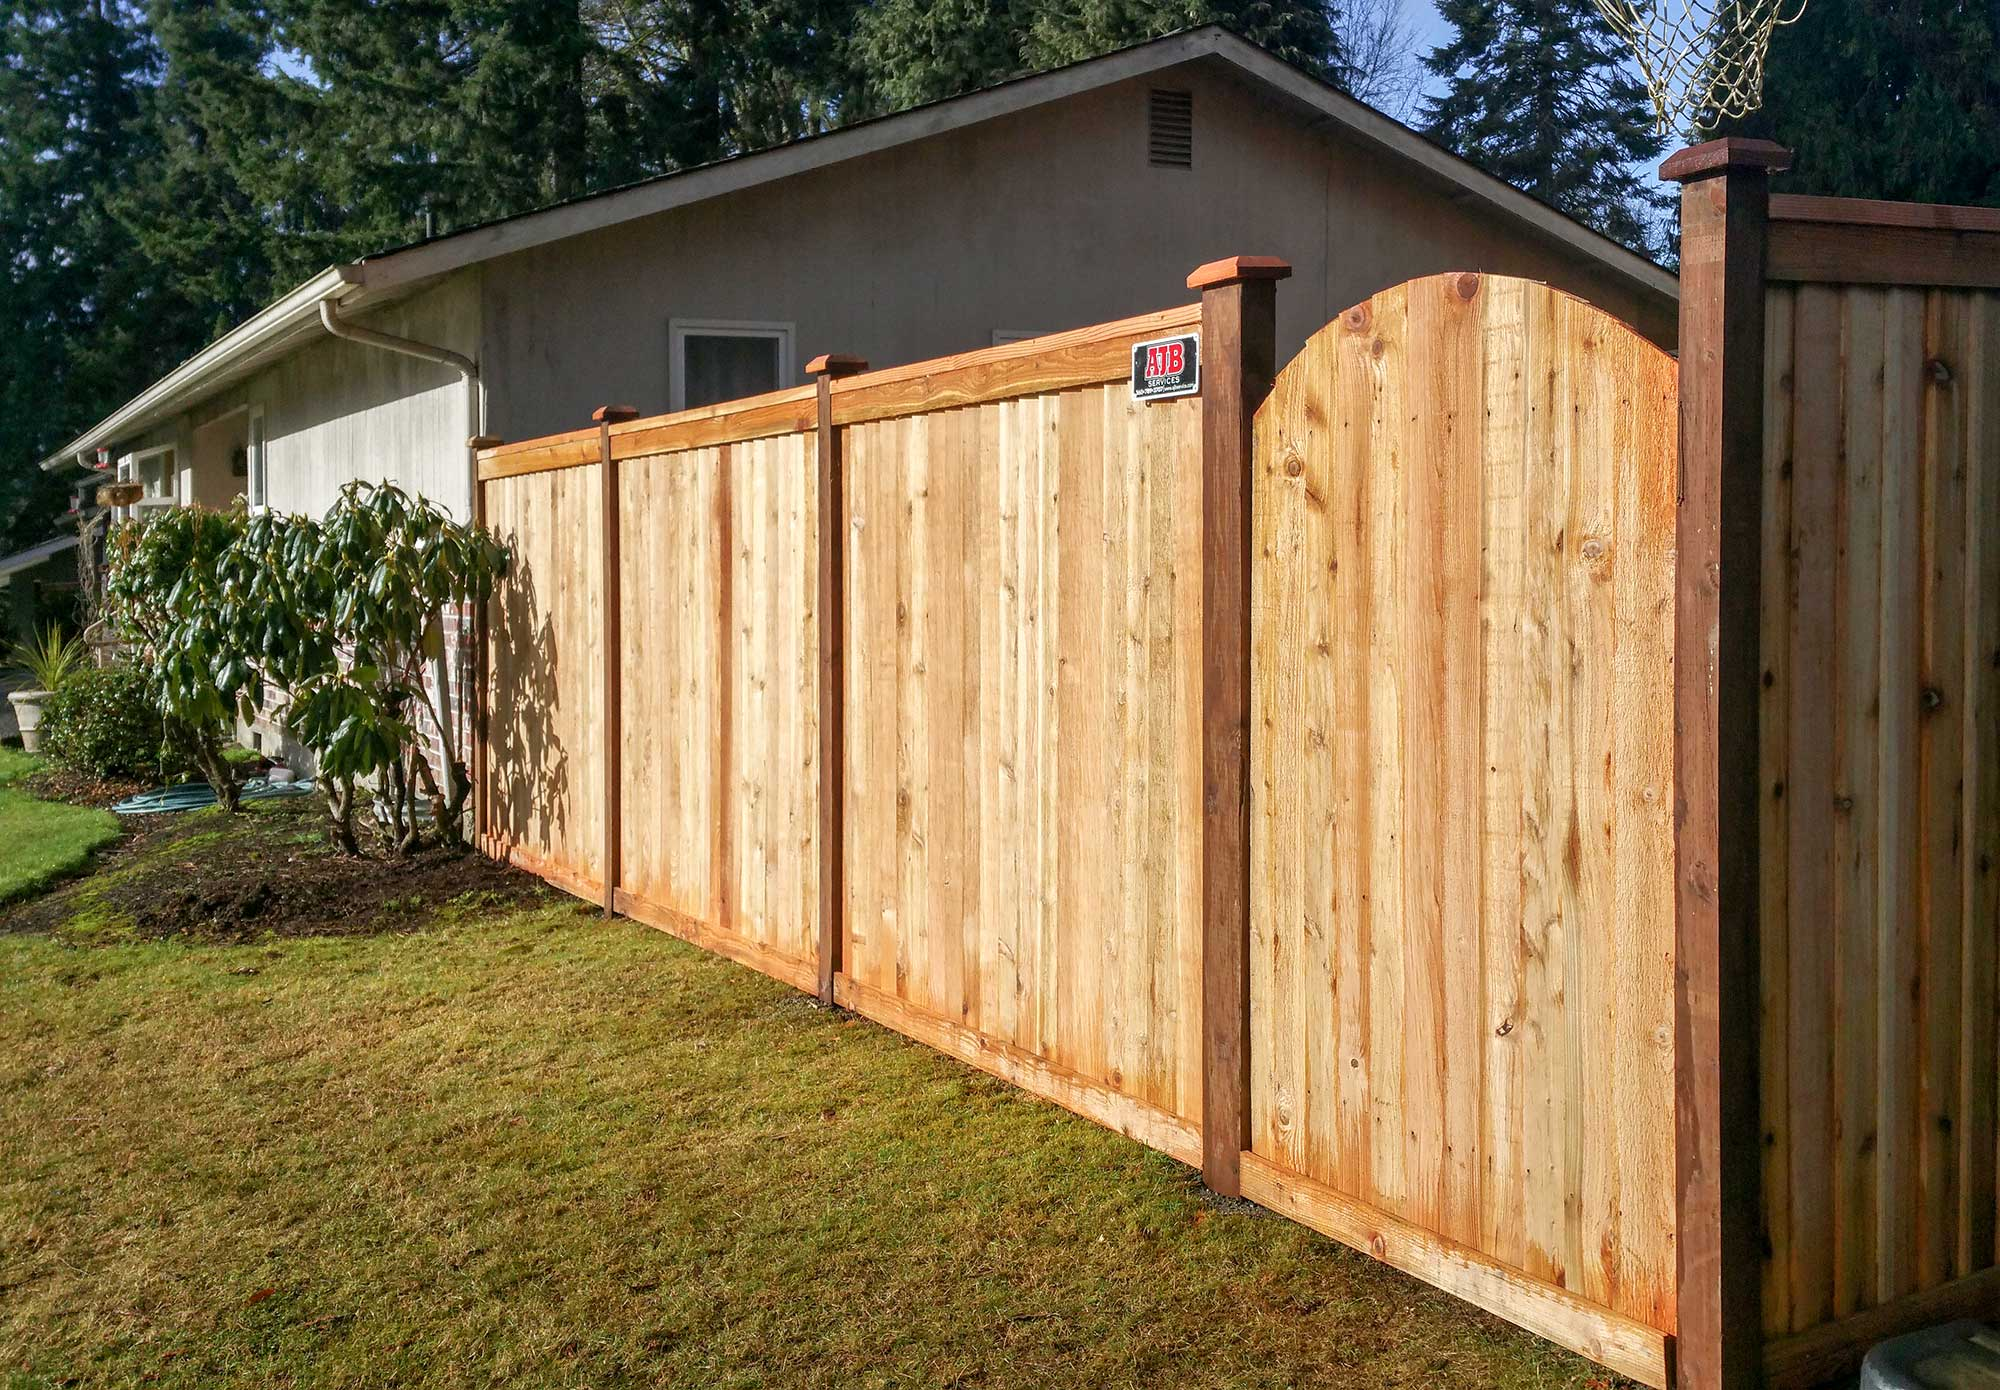 Backyard Makeover for Special Needs Family - AJB Landscaping & Fence